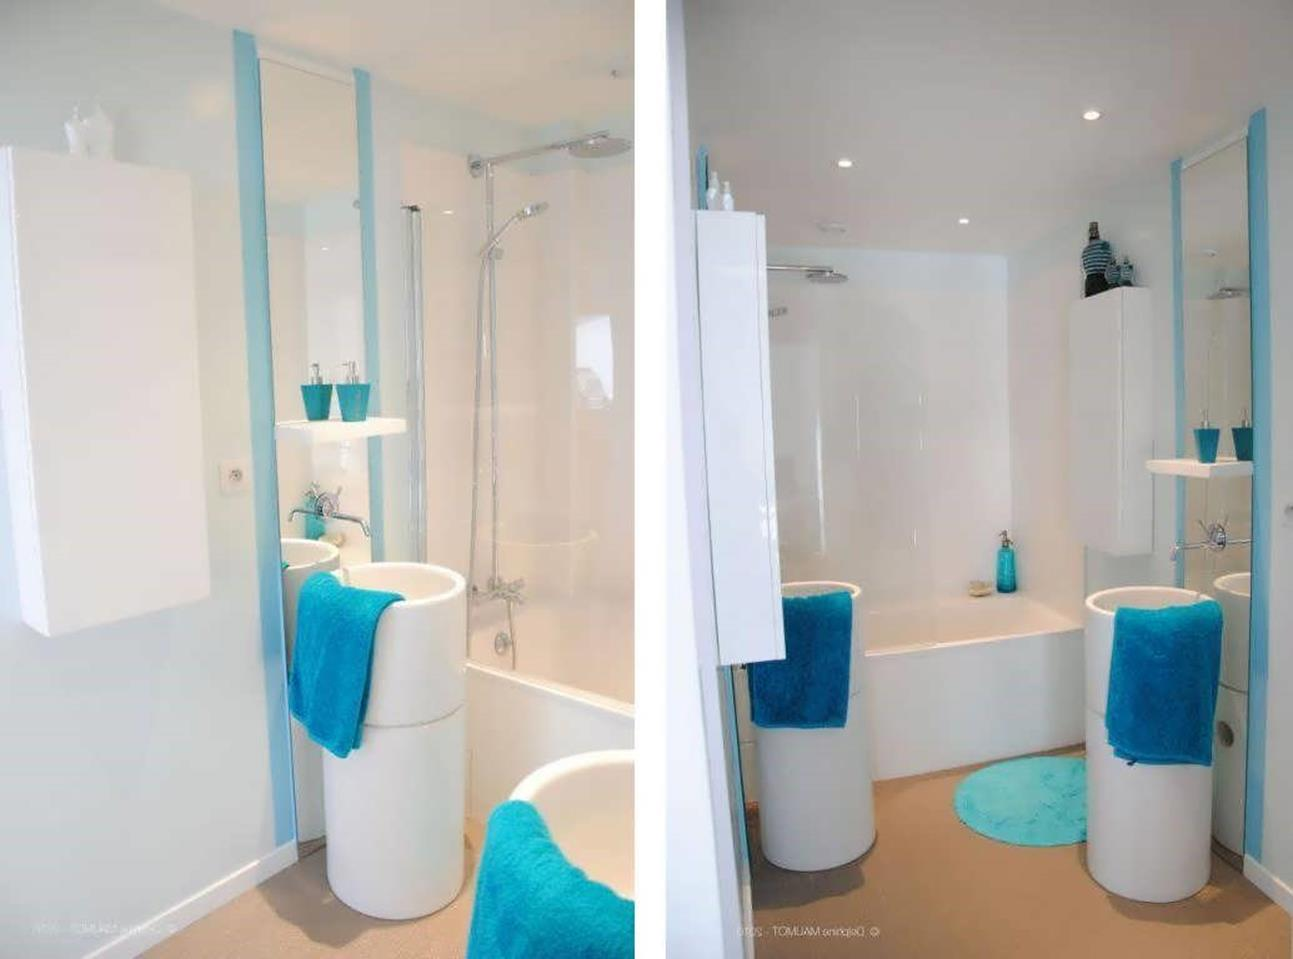 32 Perfect Apartment Bathroom Decorating Ideas On A Budget - Gongetech